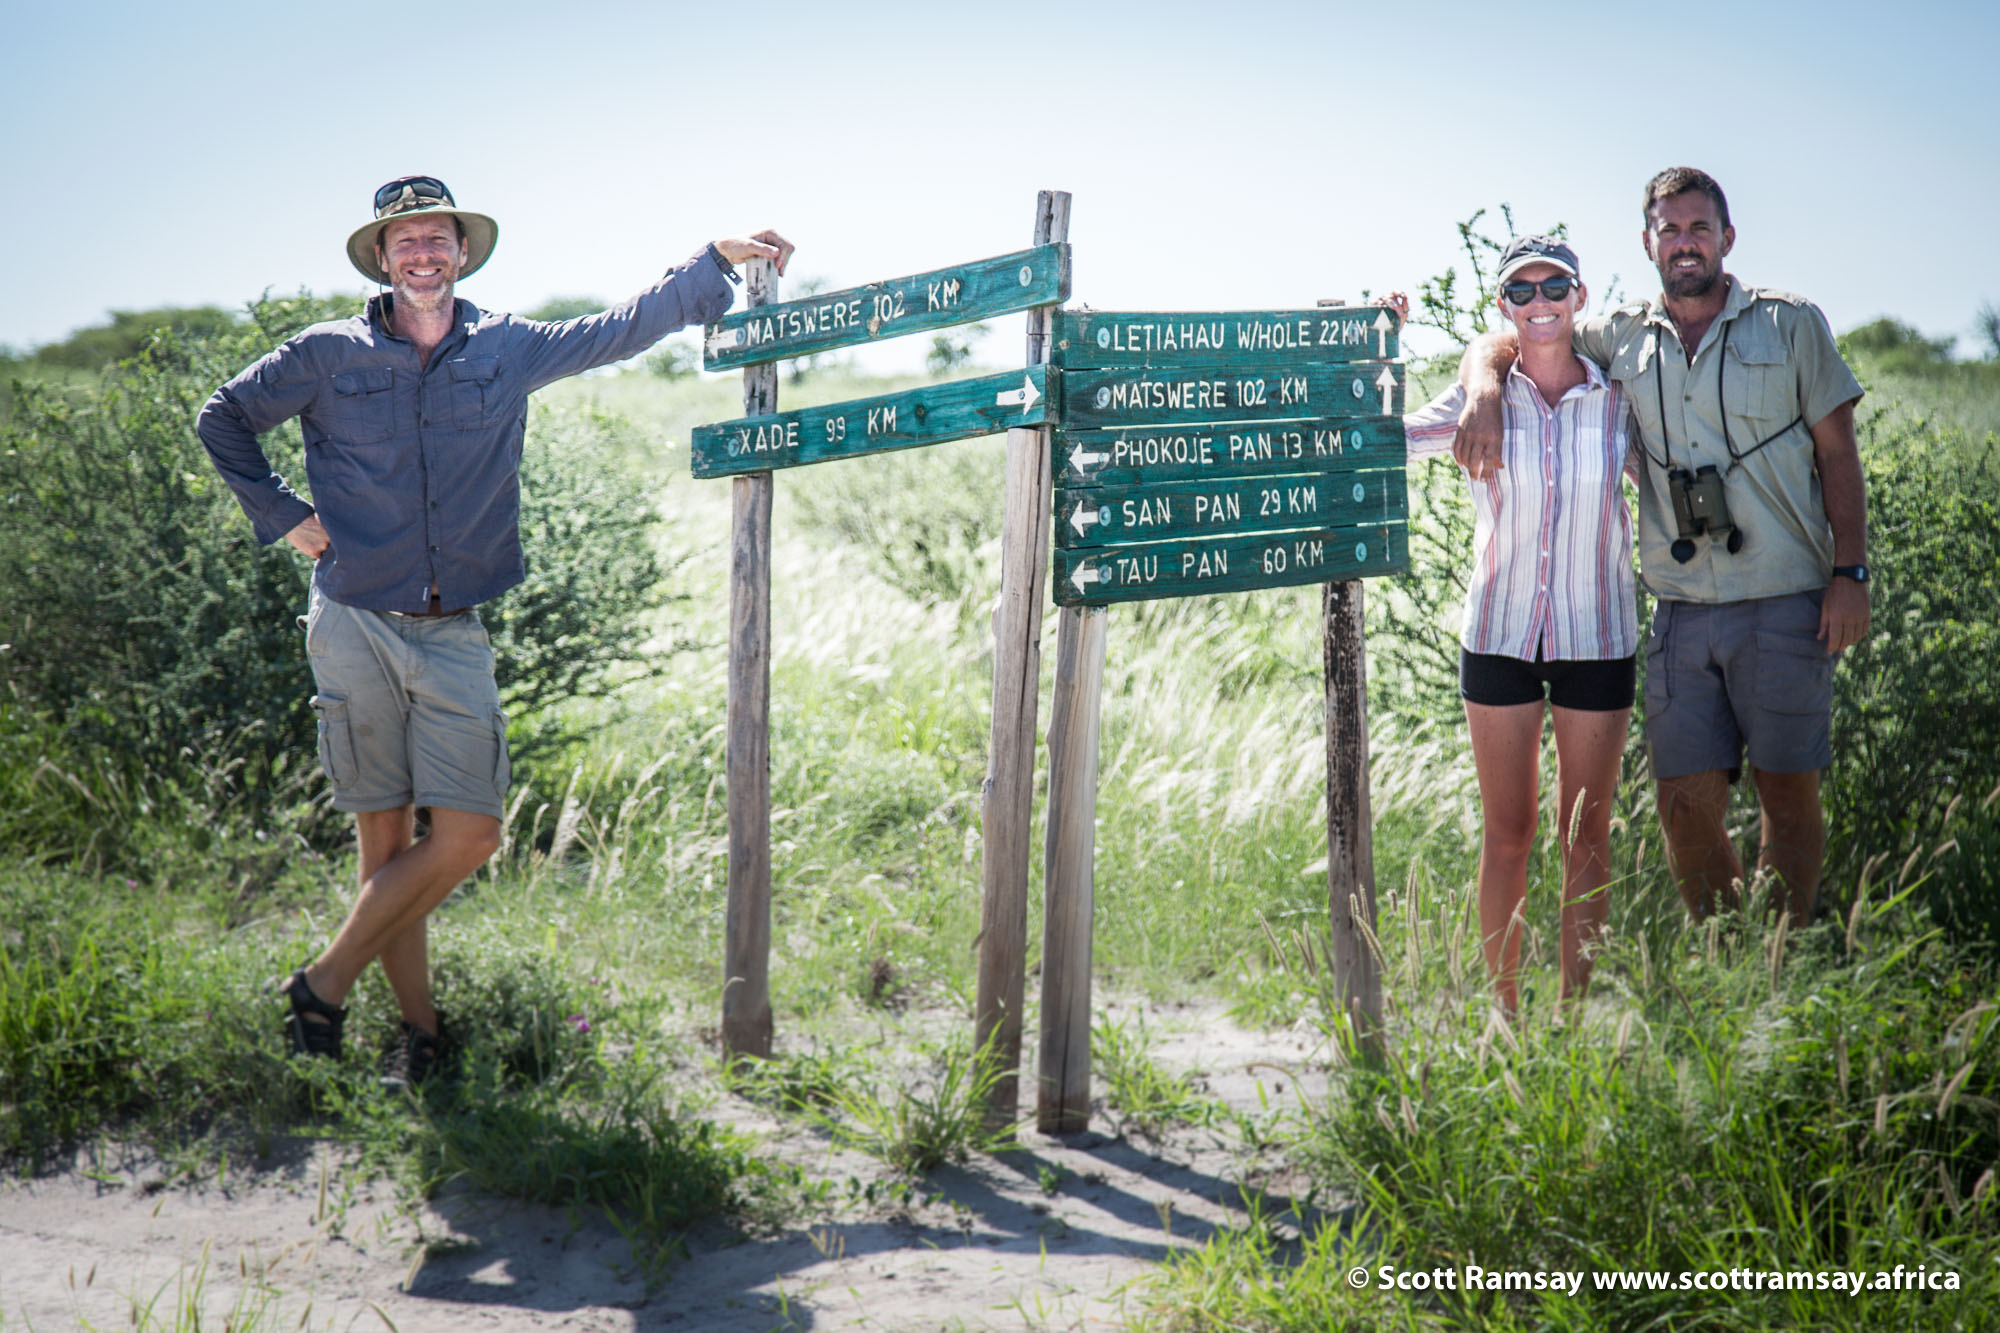 With my friends Ian and Joni, on our way to Piper's Pan. These signposts are the only man-made things in the reserve, along with long-drop loos and open-air bucket showers.